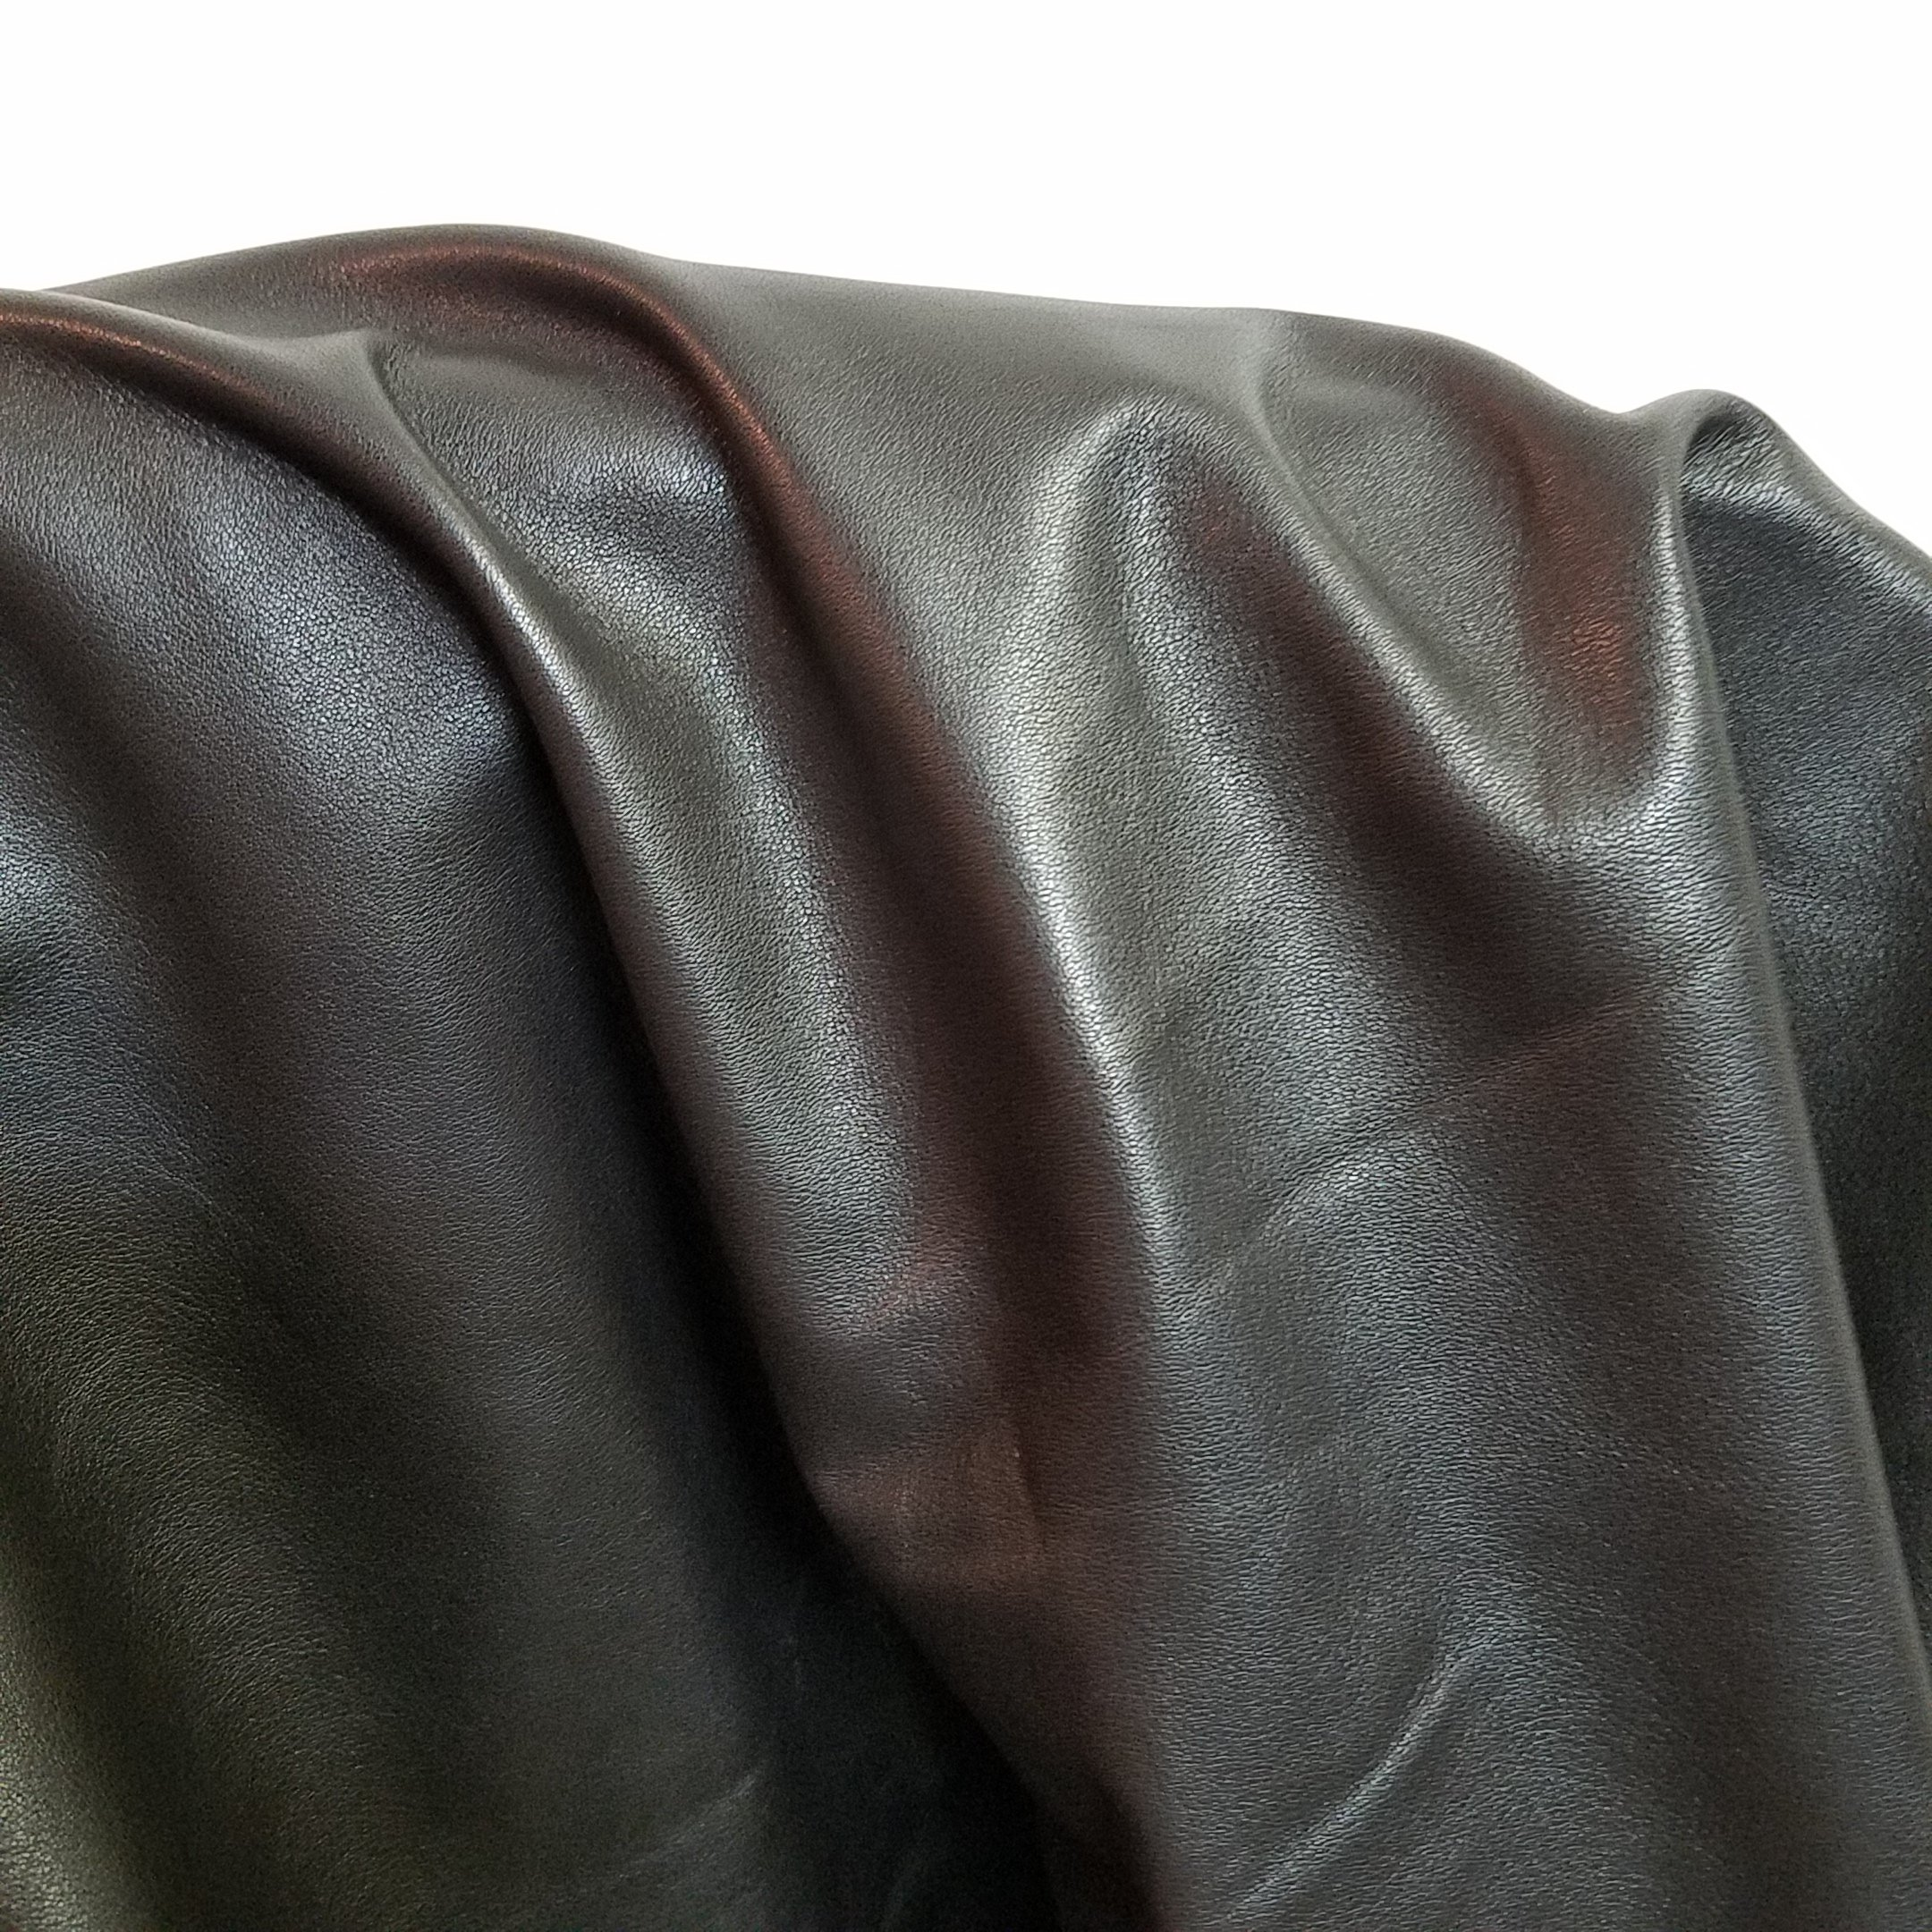 DARK BROWN COW HIDE LEATHER SKINS 17-21 SQ.FT. 1.5-2.0 OZ. UPHOLSTERY BOOKBINDING CHAP NAT Leathers (17-21 sq.ft)